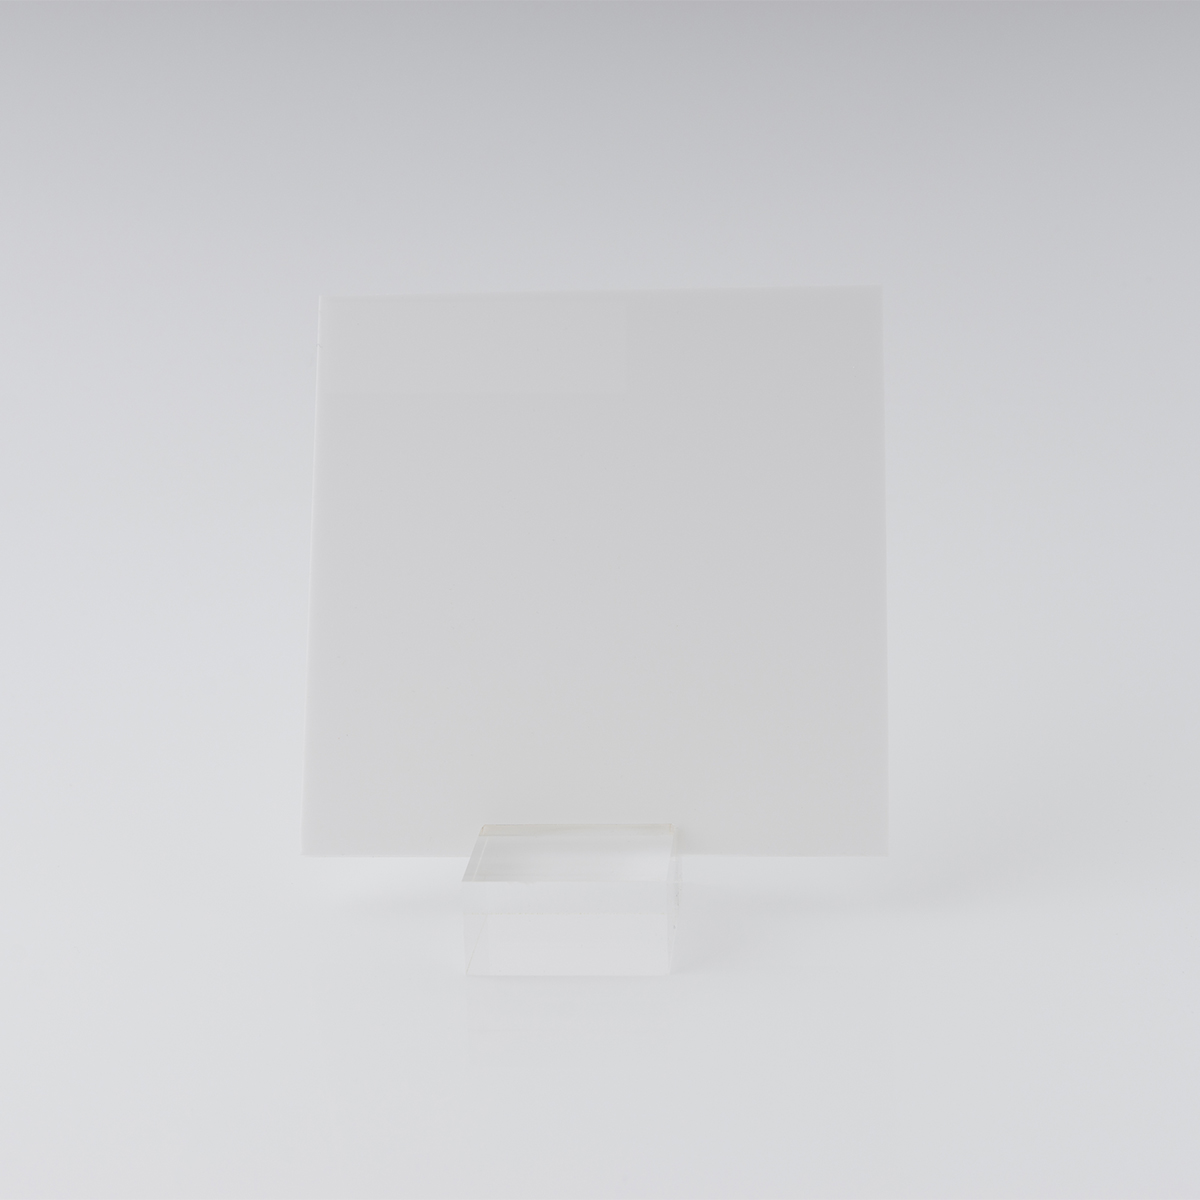 White 069 Perspex Acrylic Sheet With 9% Light Transmission